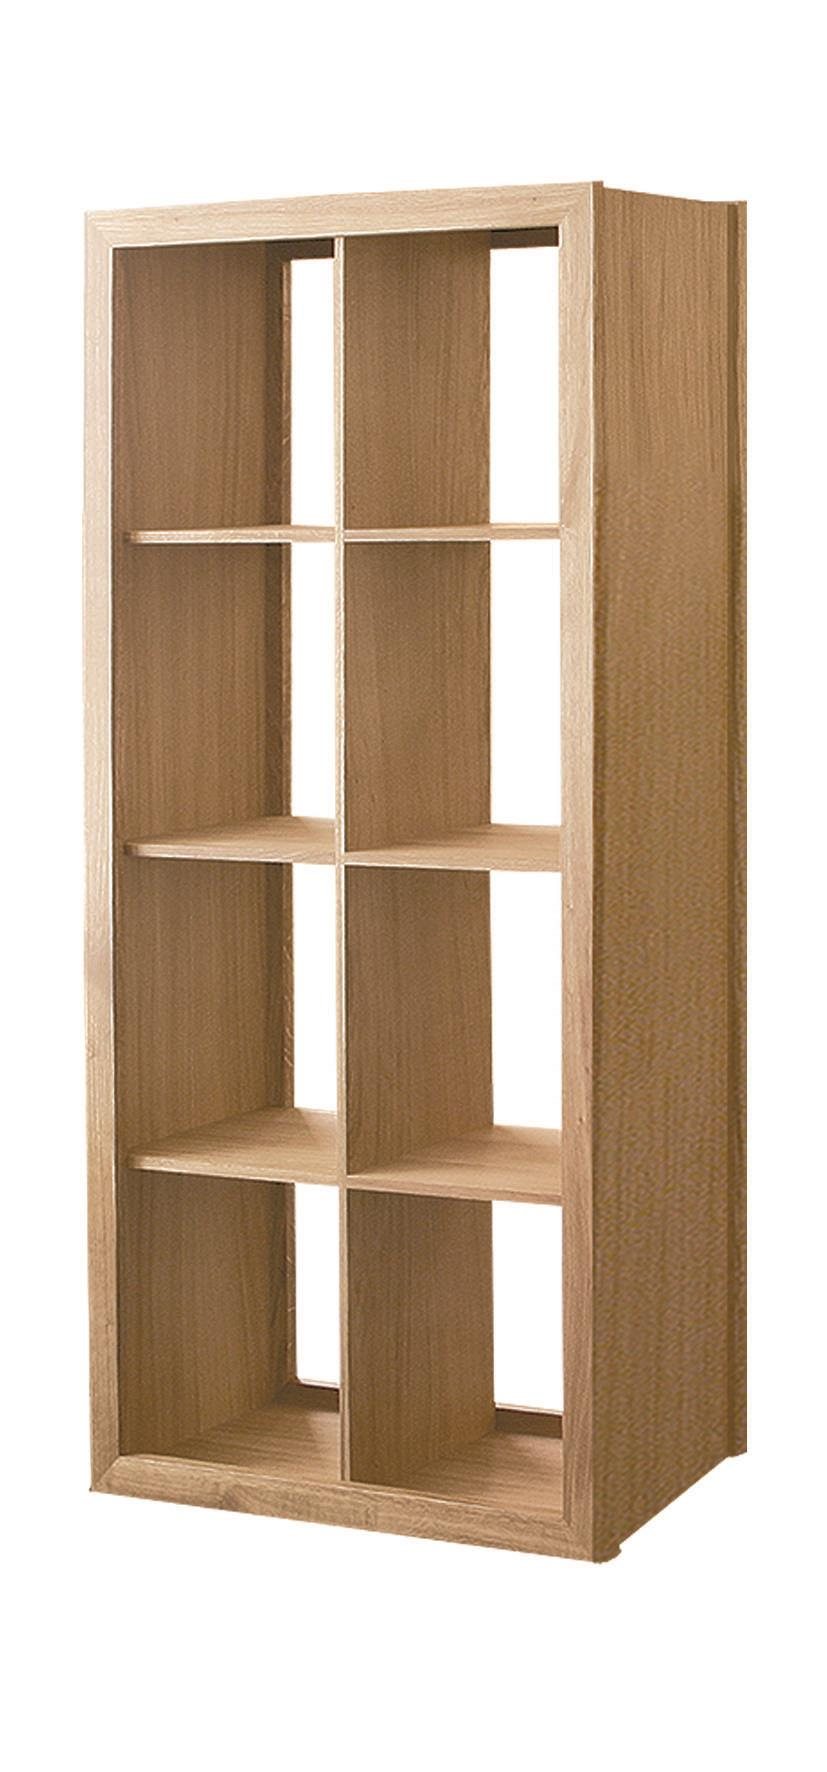 Windsor - Cube Shelf Unit - 8 Unit WIN817